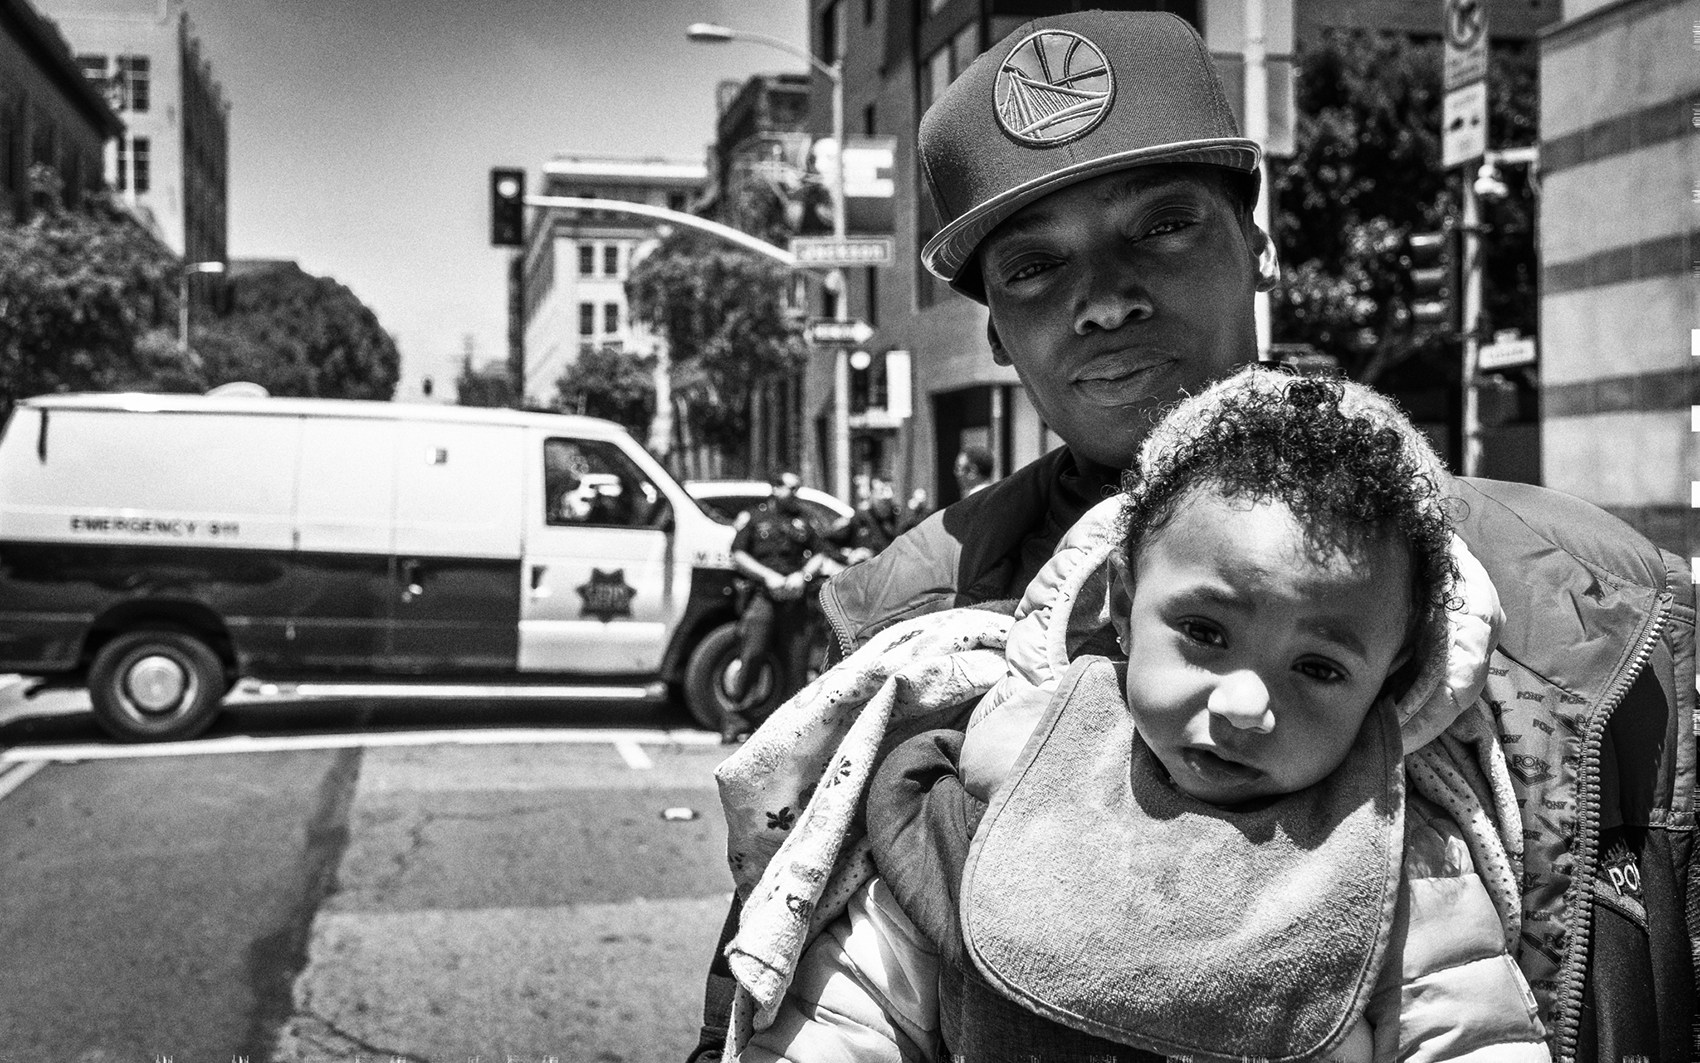 black and white street scene photo featuring parent of color carrying a child